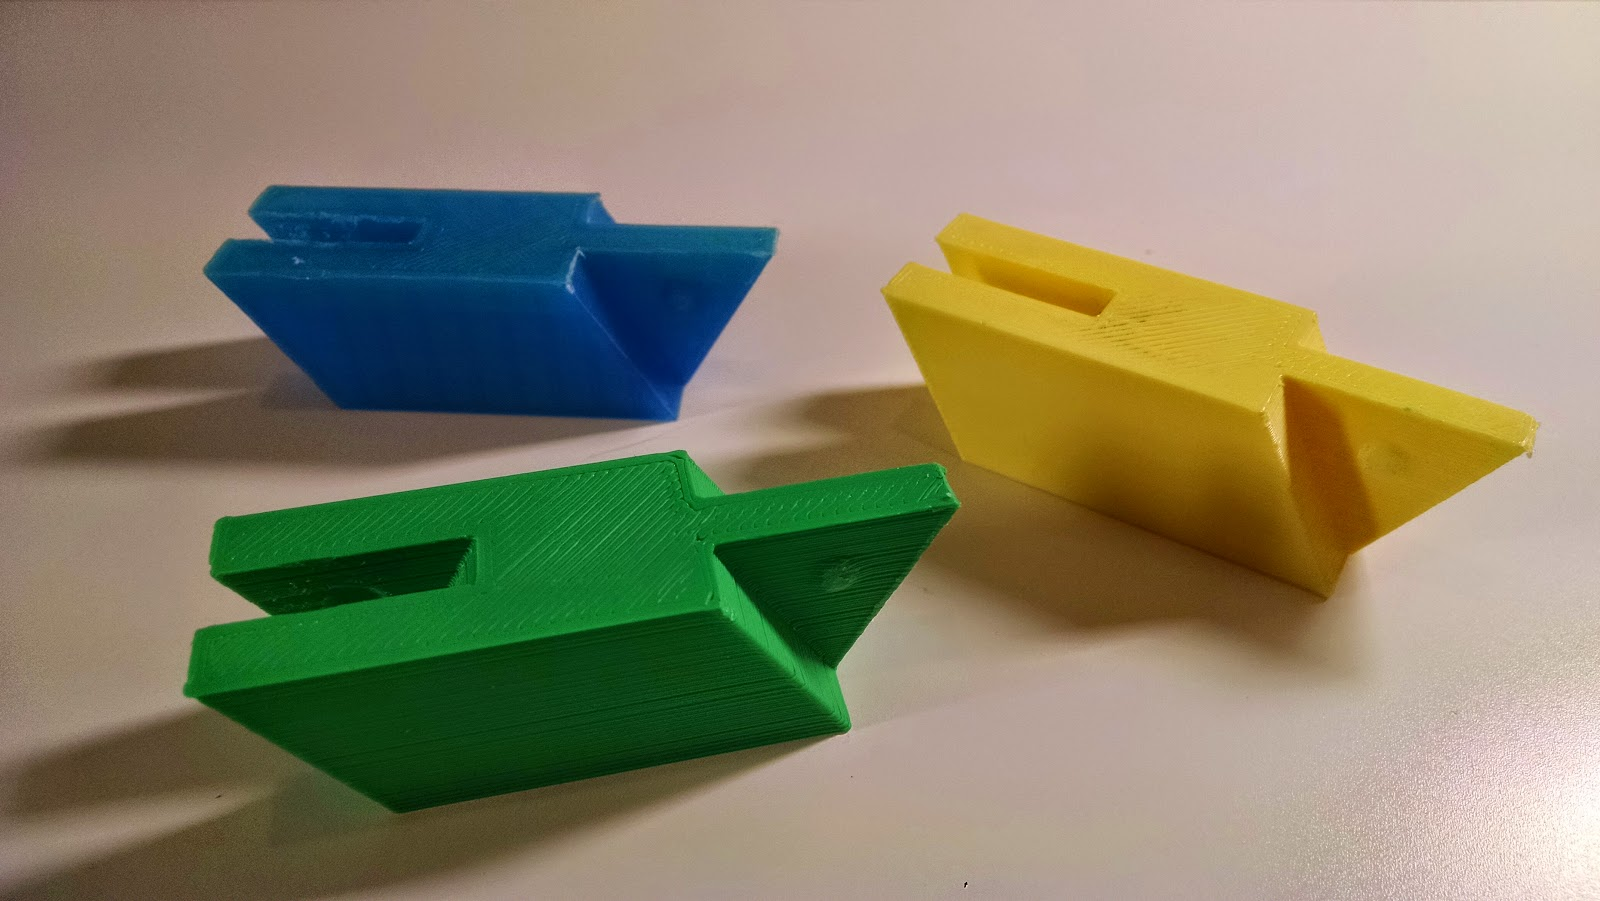 Maker club multi color 3d printing using snap together parts Making models for 3d printing